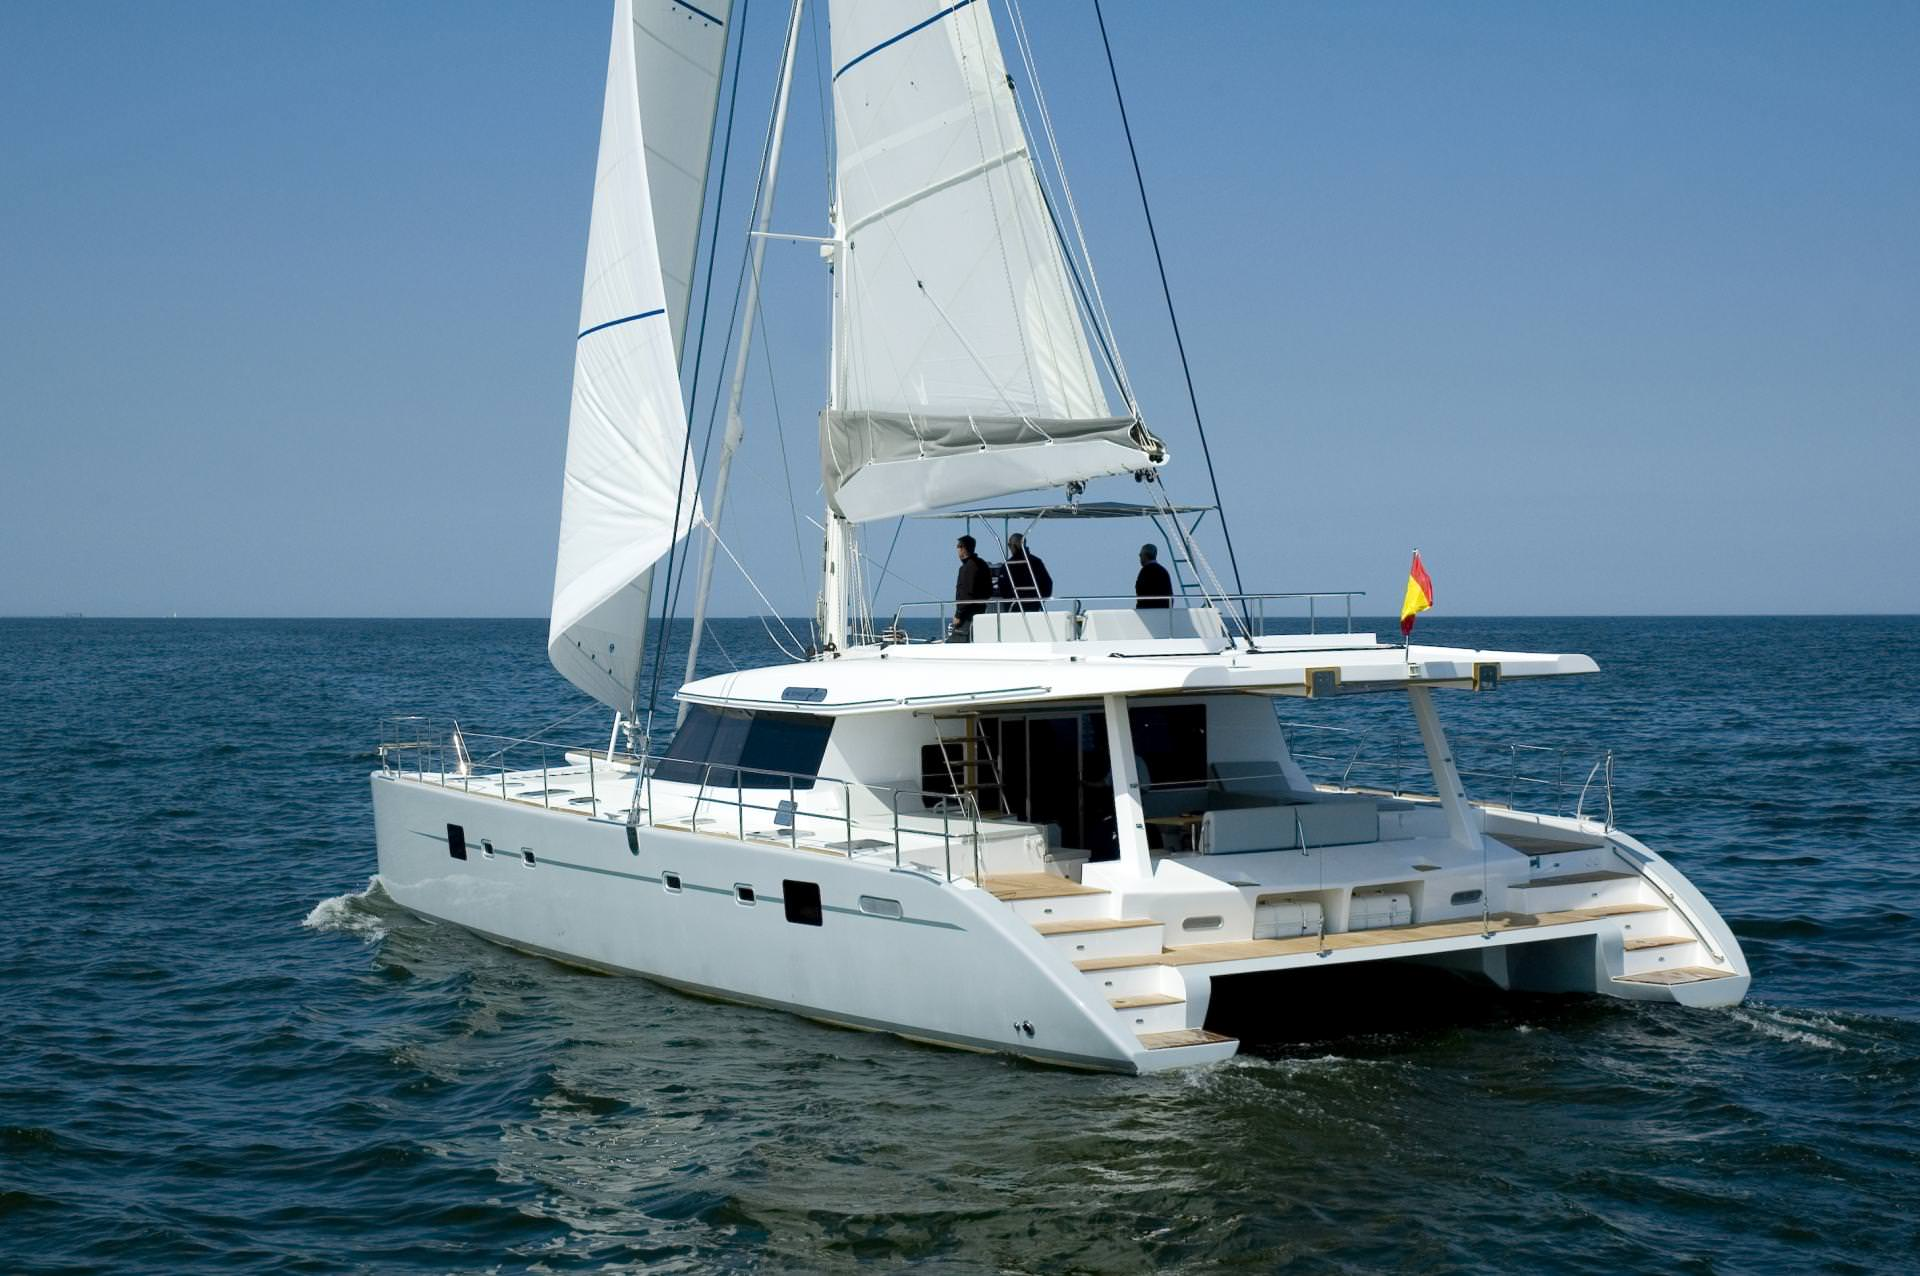 Charter with DEPENDE on compassyachtcharters.com